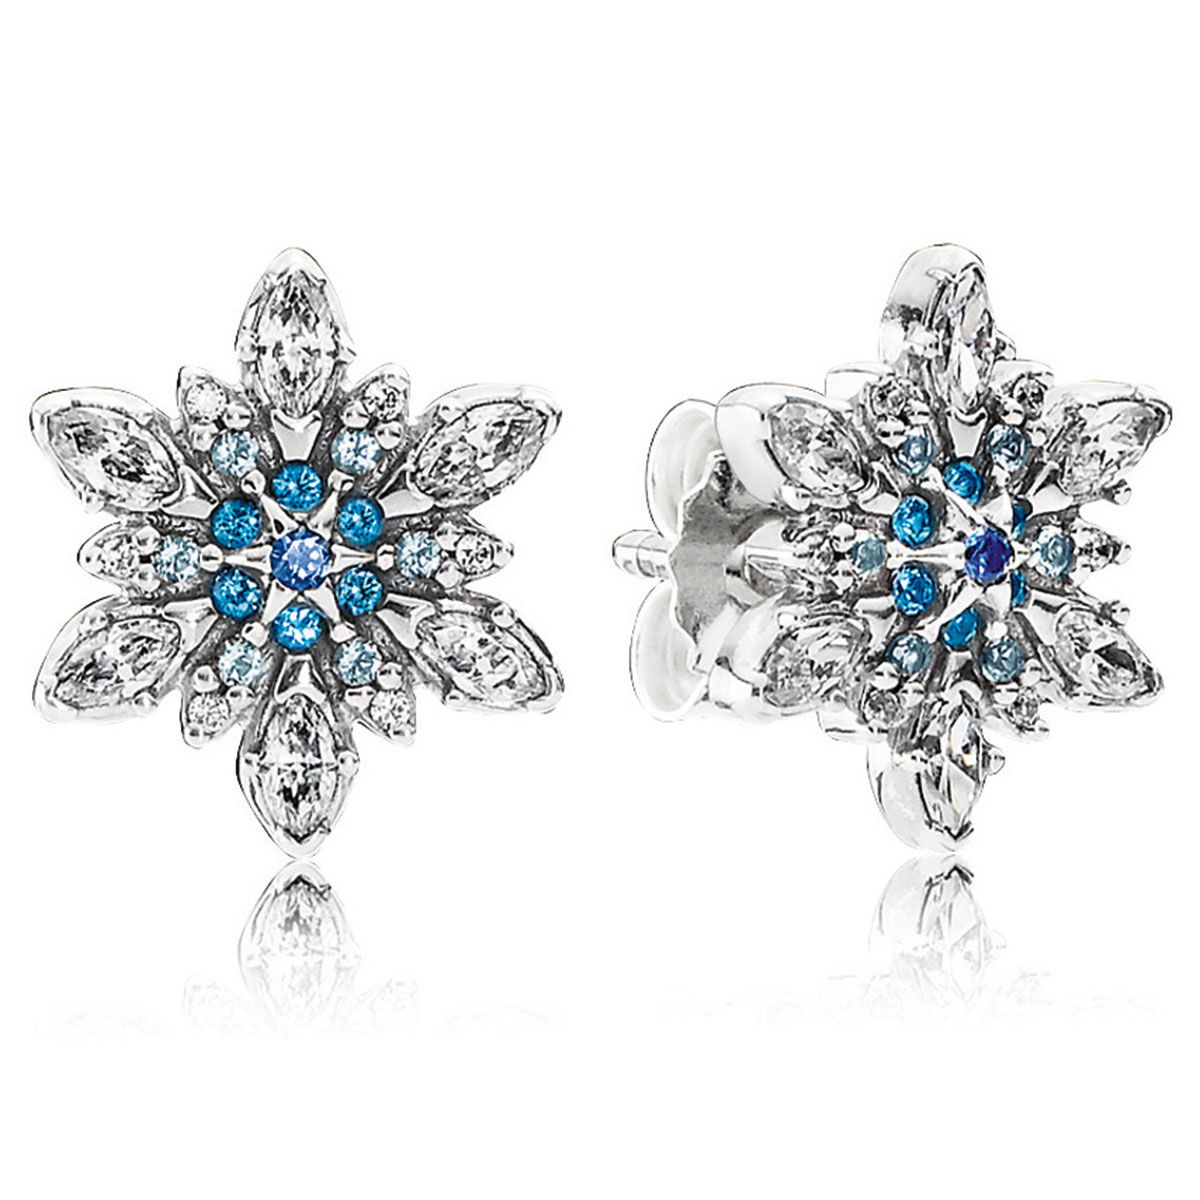 804-427-PANDORA Crystalized Snowflake with Blue Crystals & Clear CZ Earrings